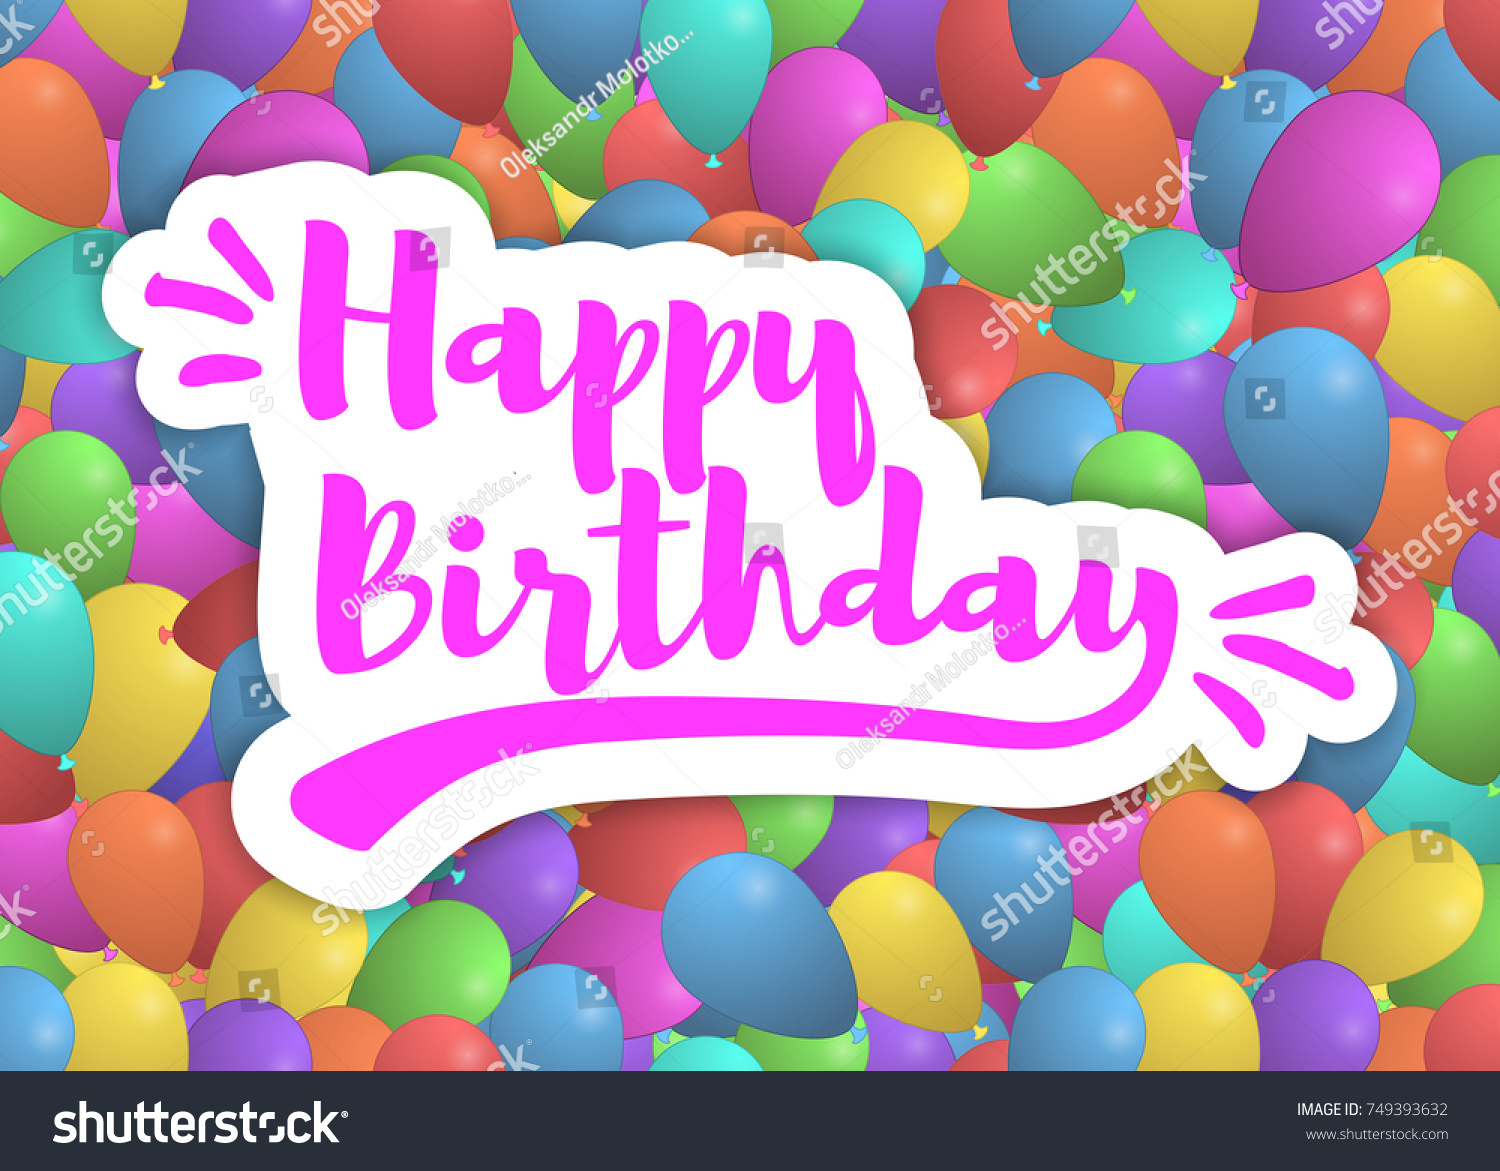 Happy Birthday Background With Colorful Balloons And LetteringTemplate For Your Festive Design Vector